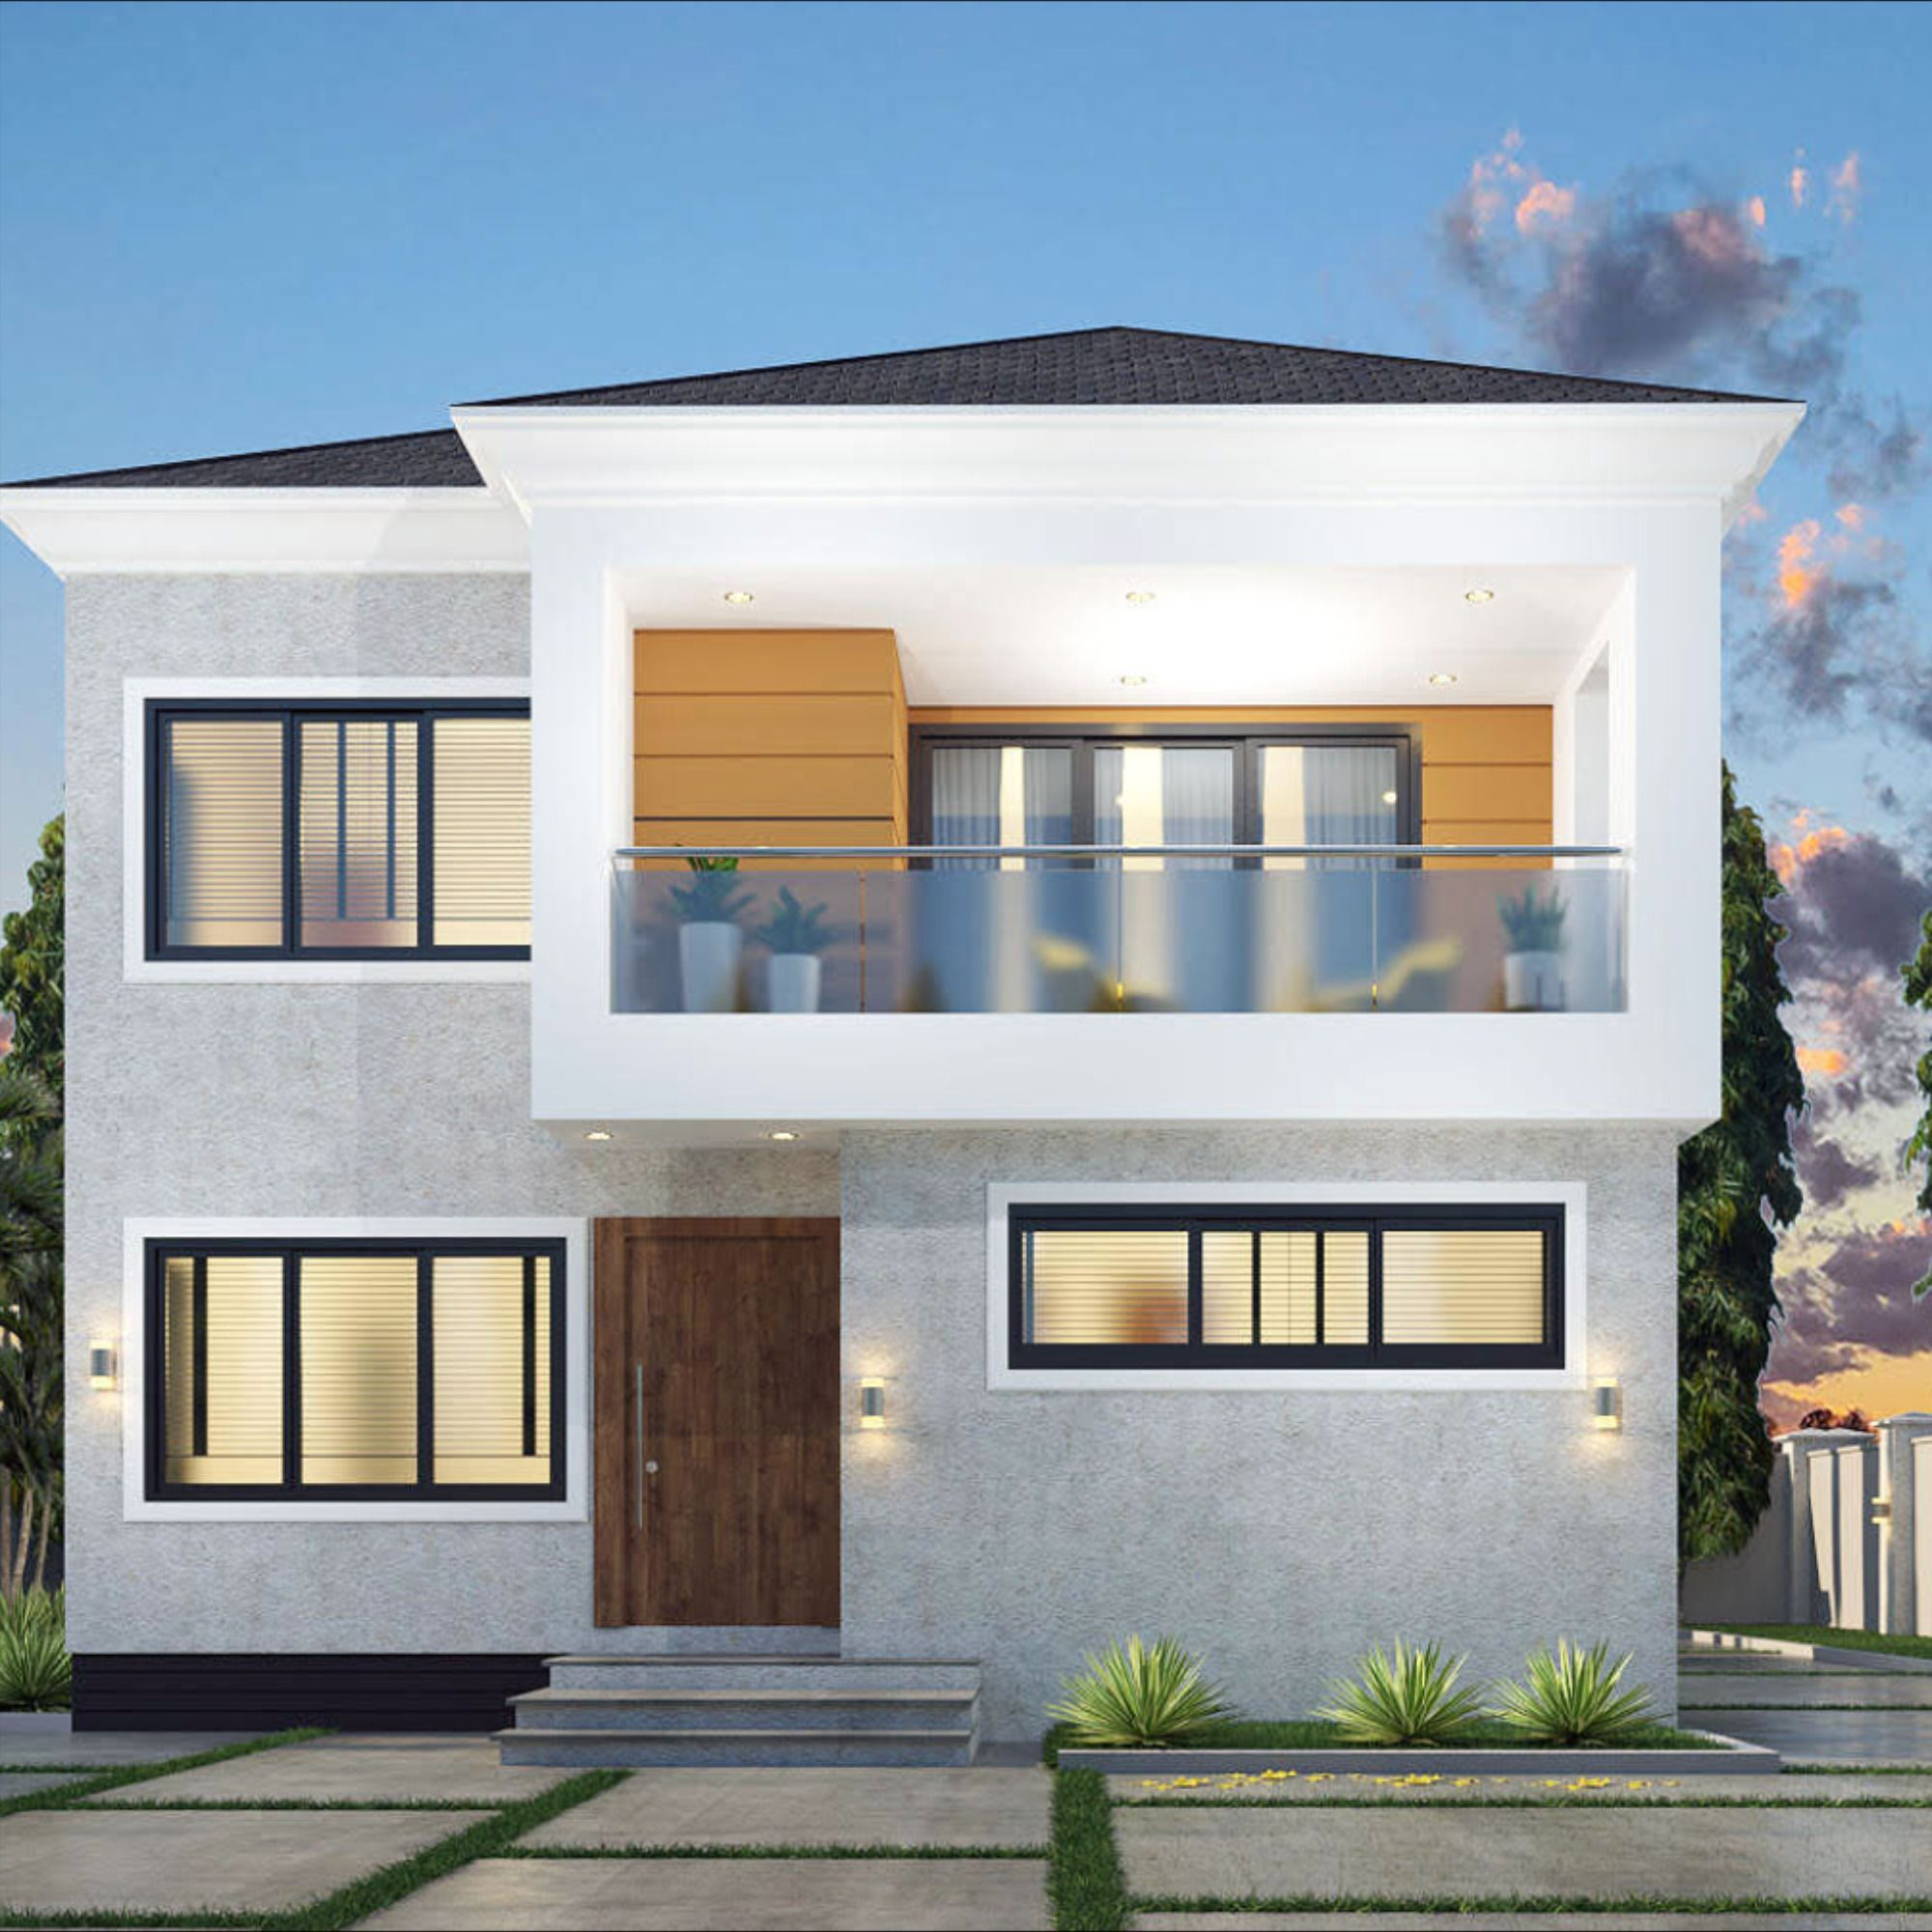 House For Sale In Ghana in 2020 House, Self build houses